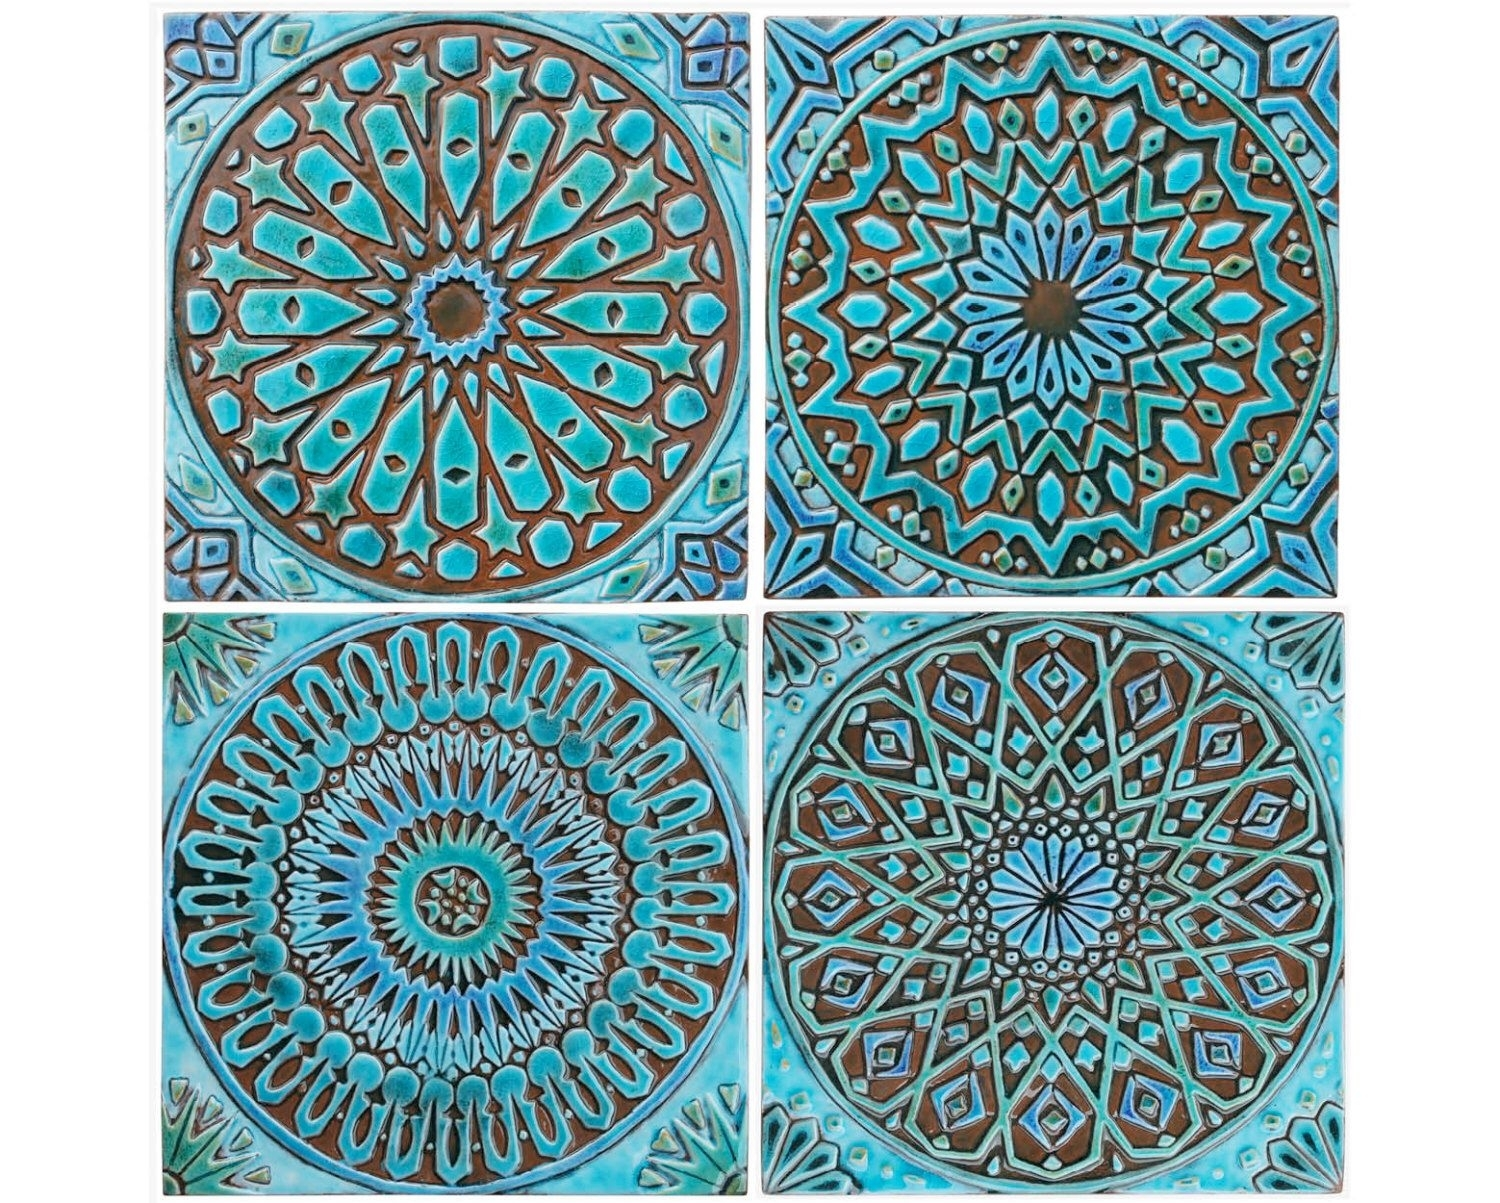 Moroccan Decor, Set Of 4 Moroccan Tiles, Moroccan Wall Art, Outdoor Intended For Most Recent Moroccan Wall Art (View 9 of 20)